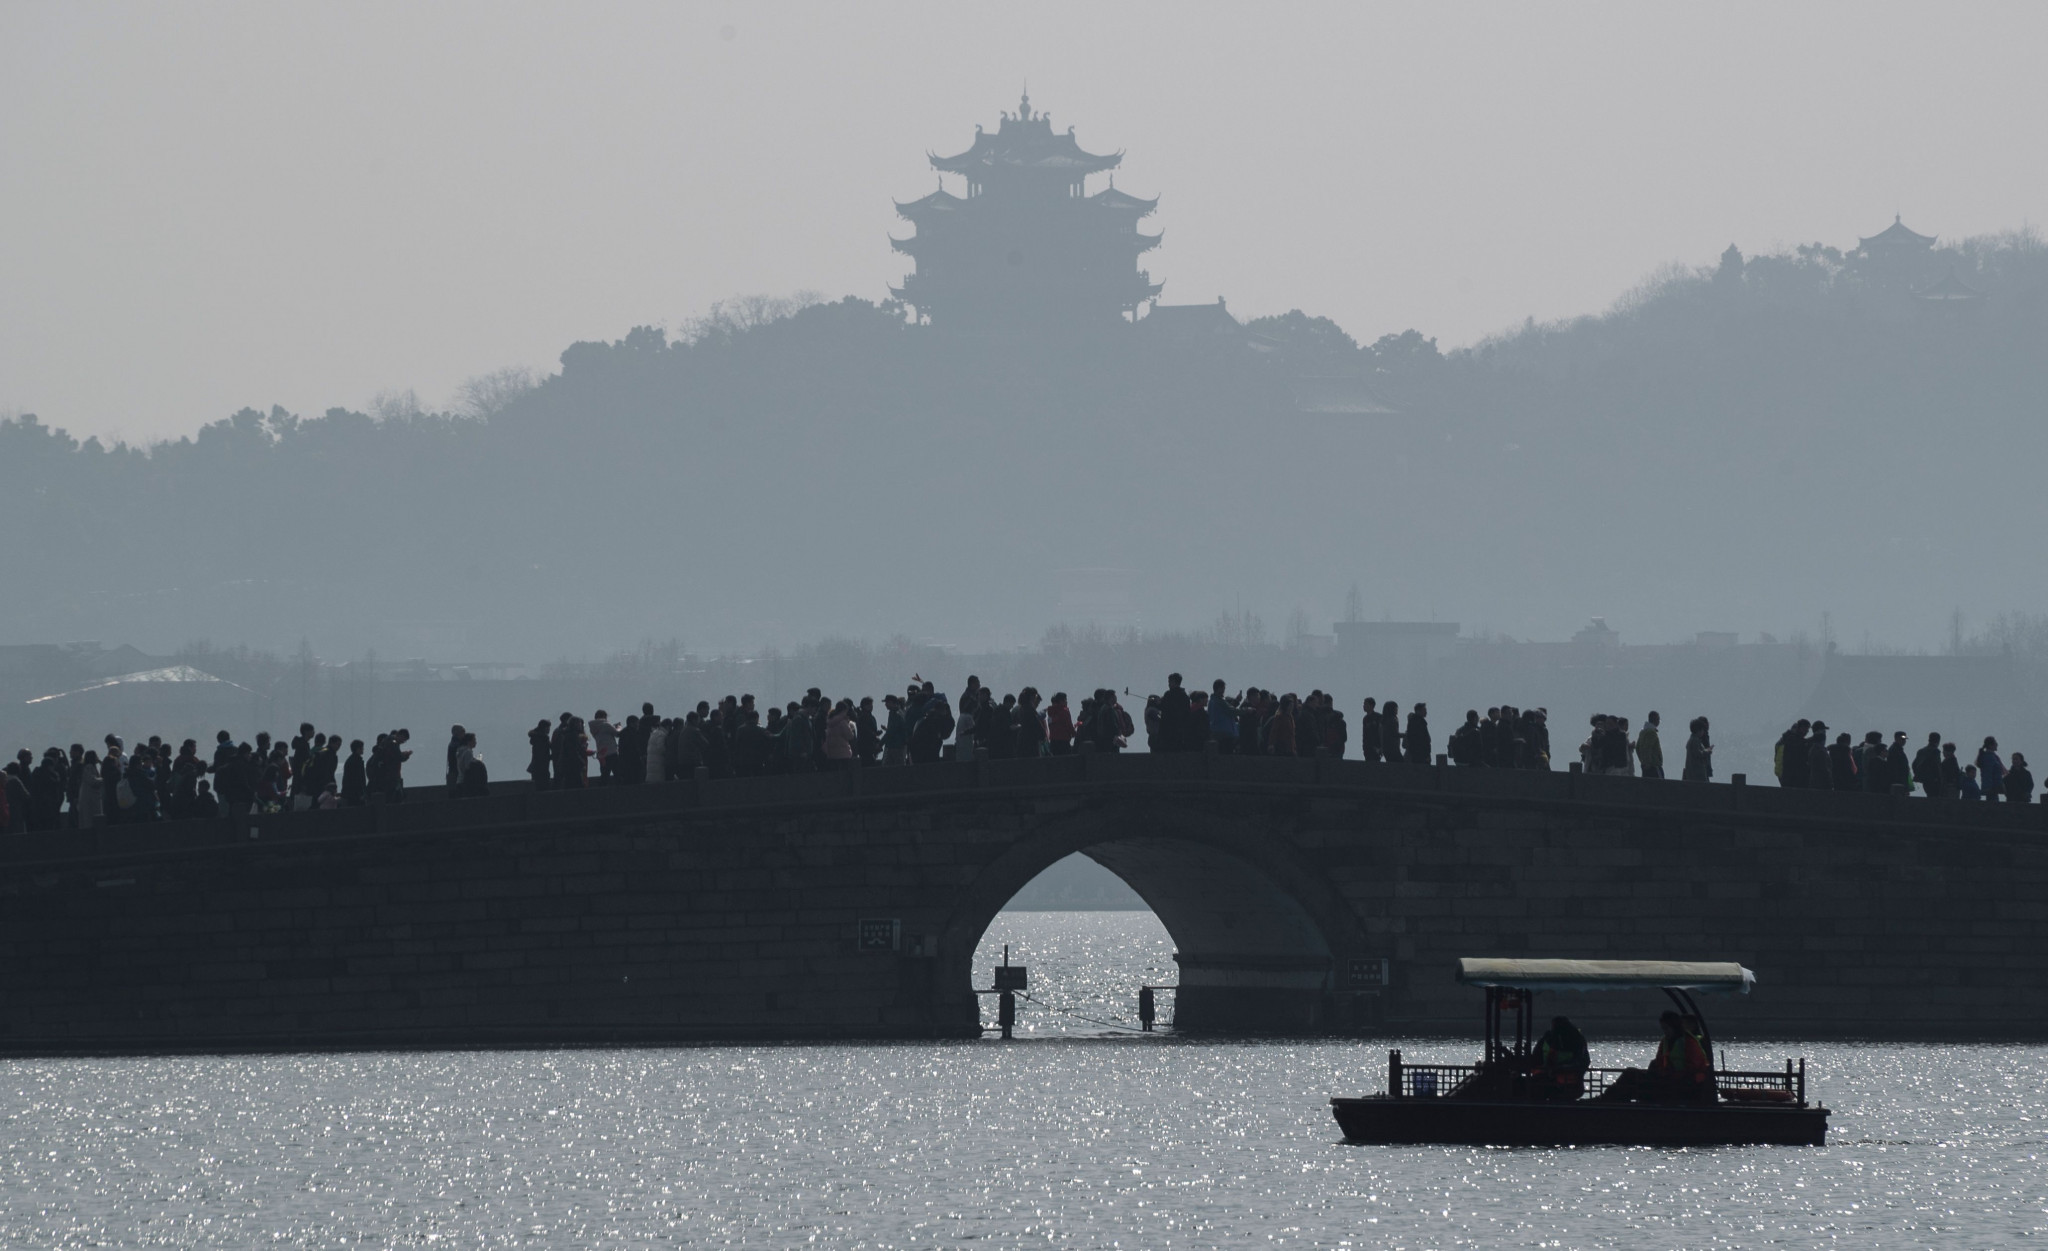 The weather in Hangzhou is generally warm and mild all year round ©Getty Images